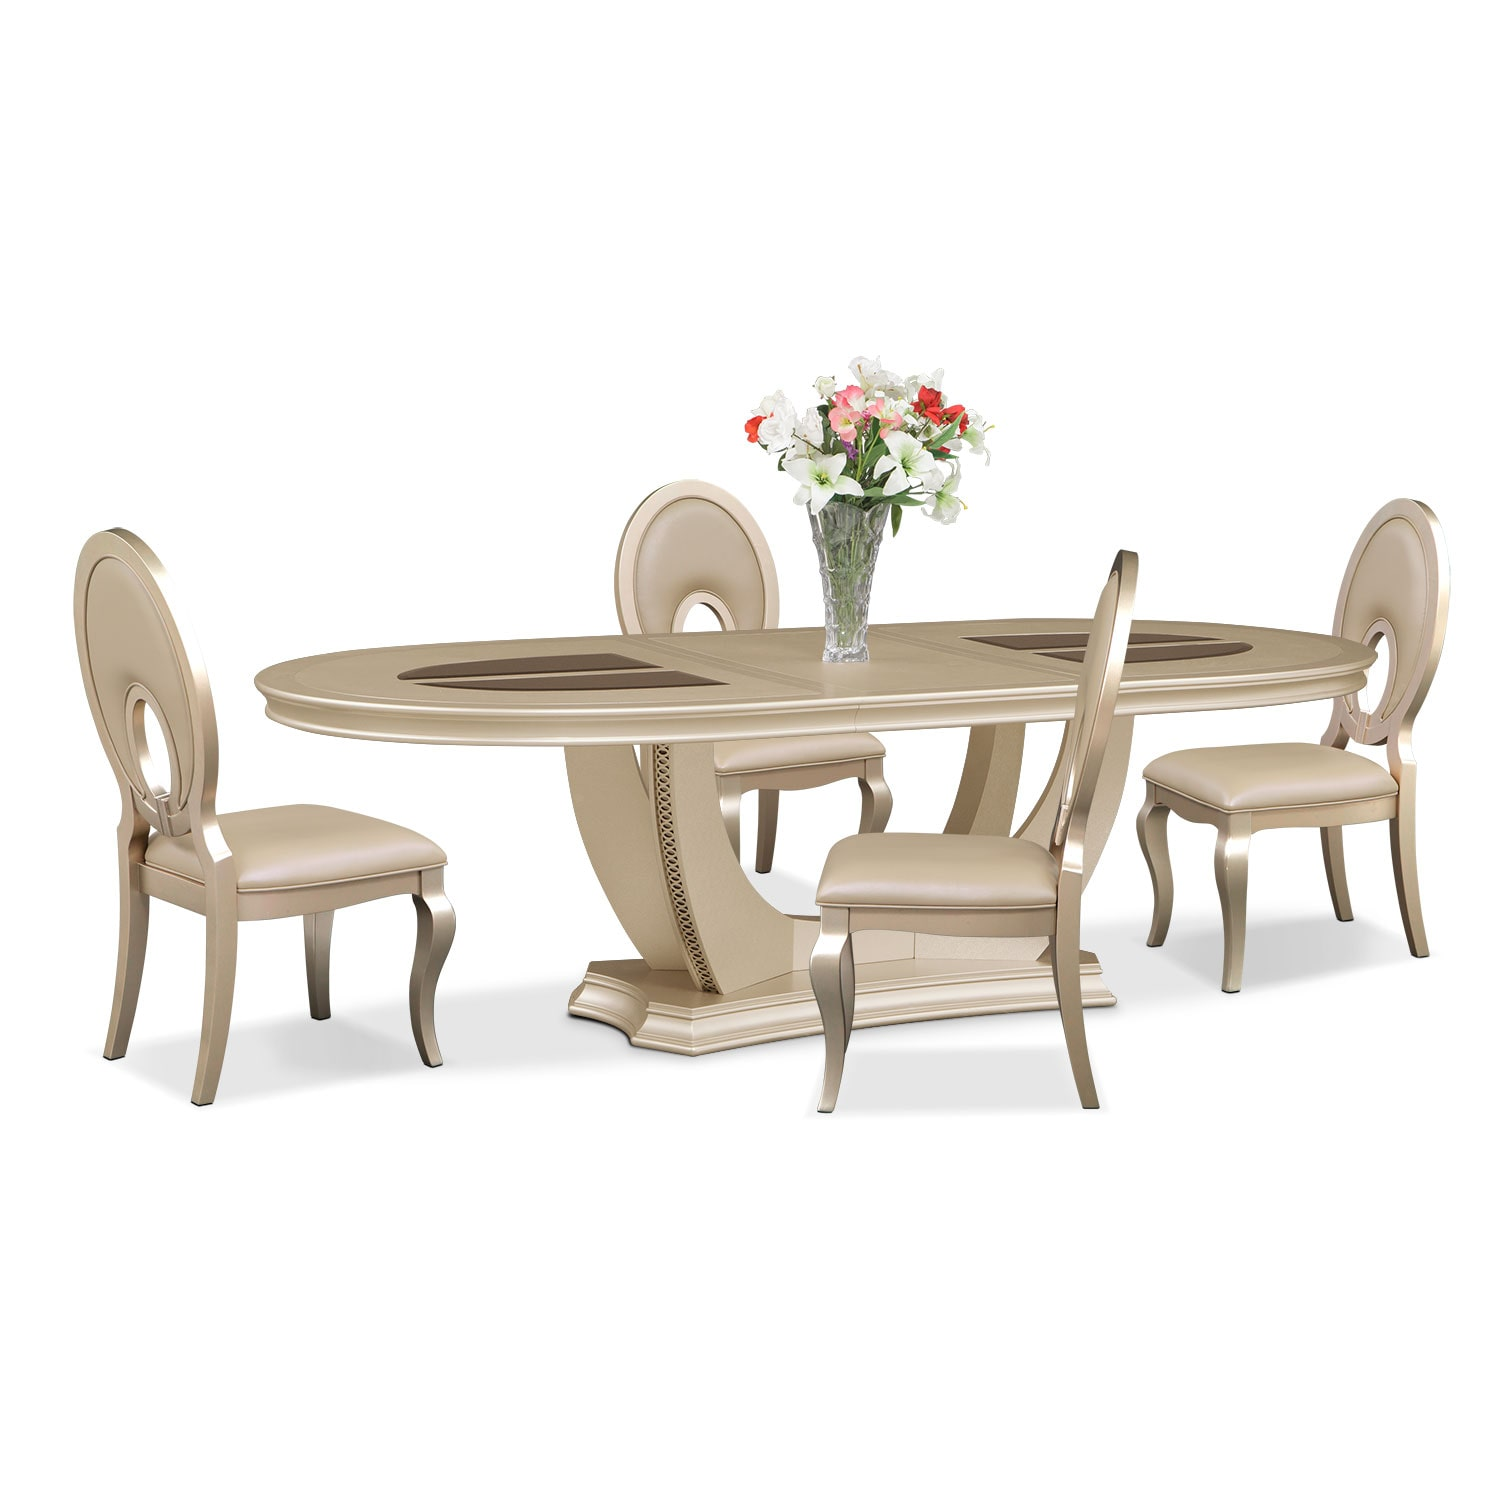 Dining Room Furniture - Allegro 5 Pc. Dining Room - Oval